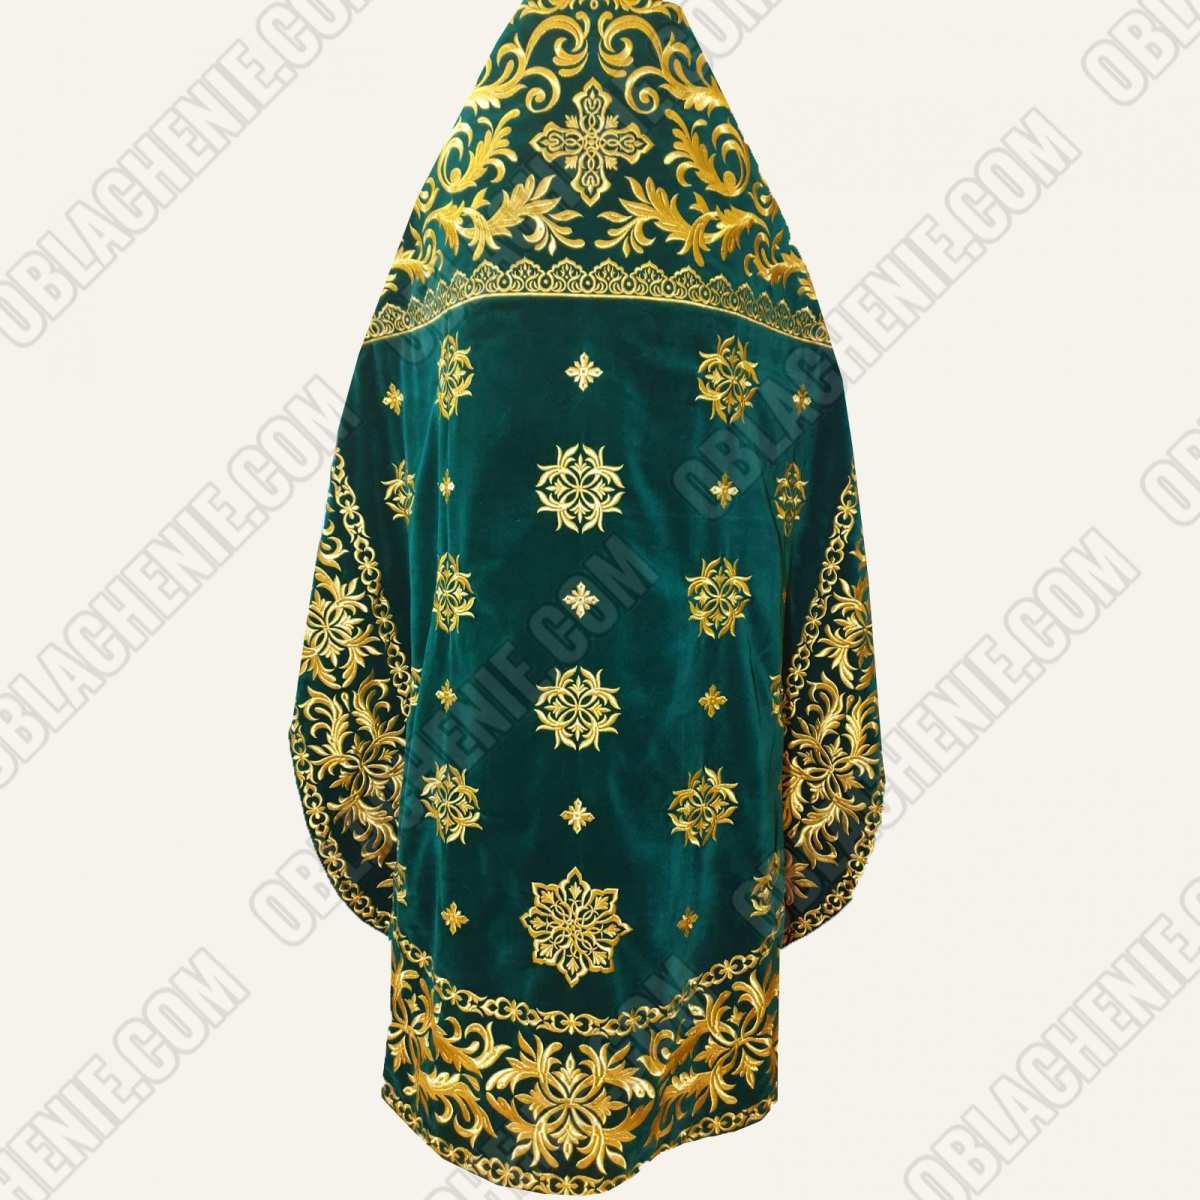 EMBROIDERED PRIEST'S VESTMENTS 11311